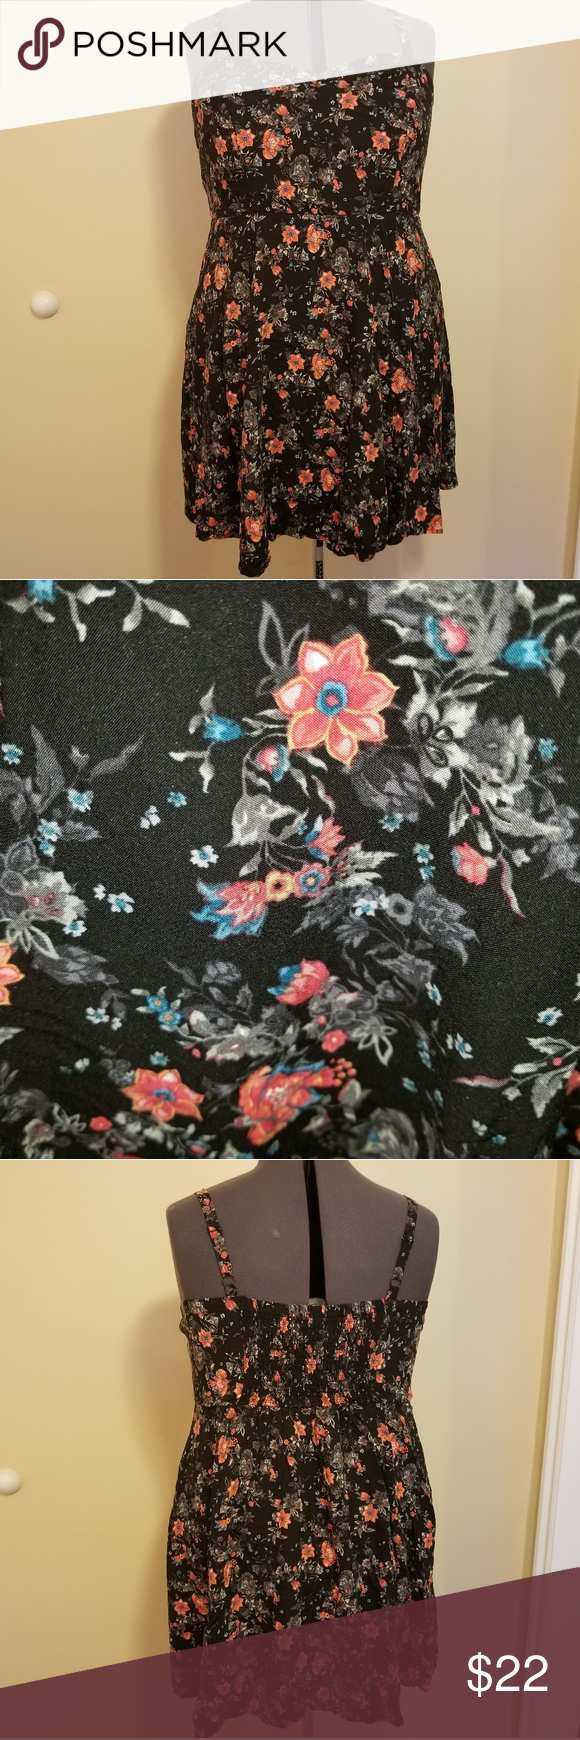 Torrid floral short sundress Excellent condition.  Worn twice.  Unfortunately I'm a bit too tall for this...especially for summer activities!   Has stretch back for the perfect fit. torrid Dresses Mini #shortsundress